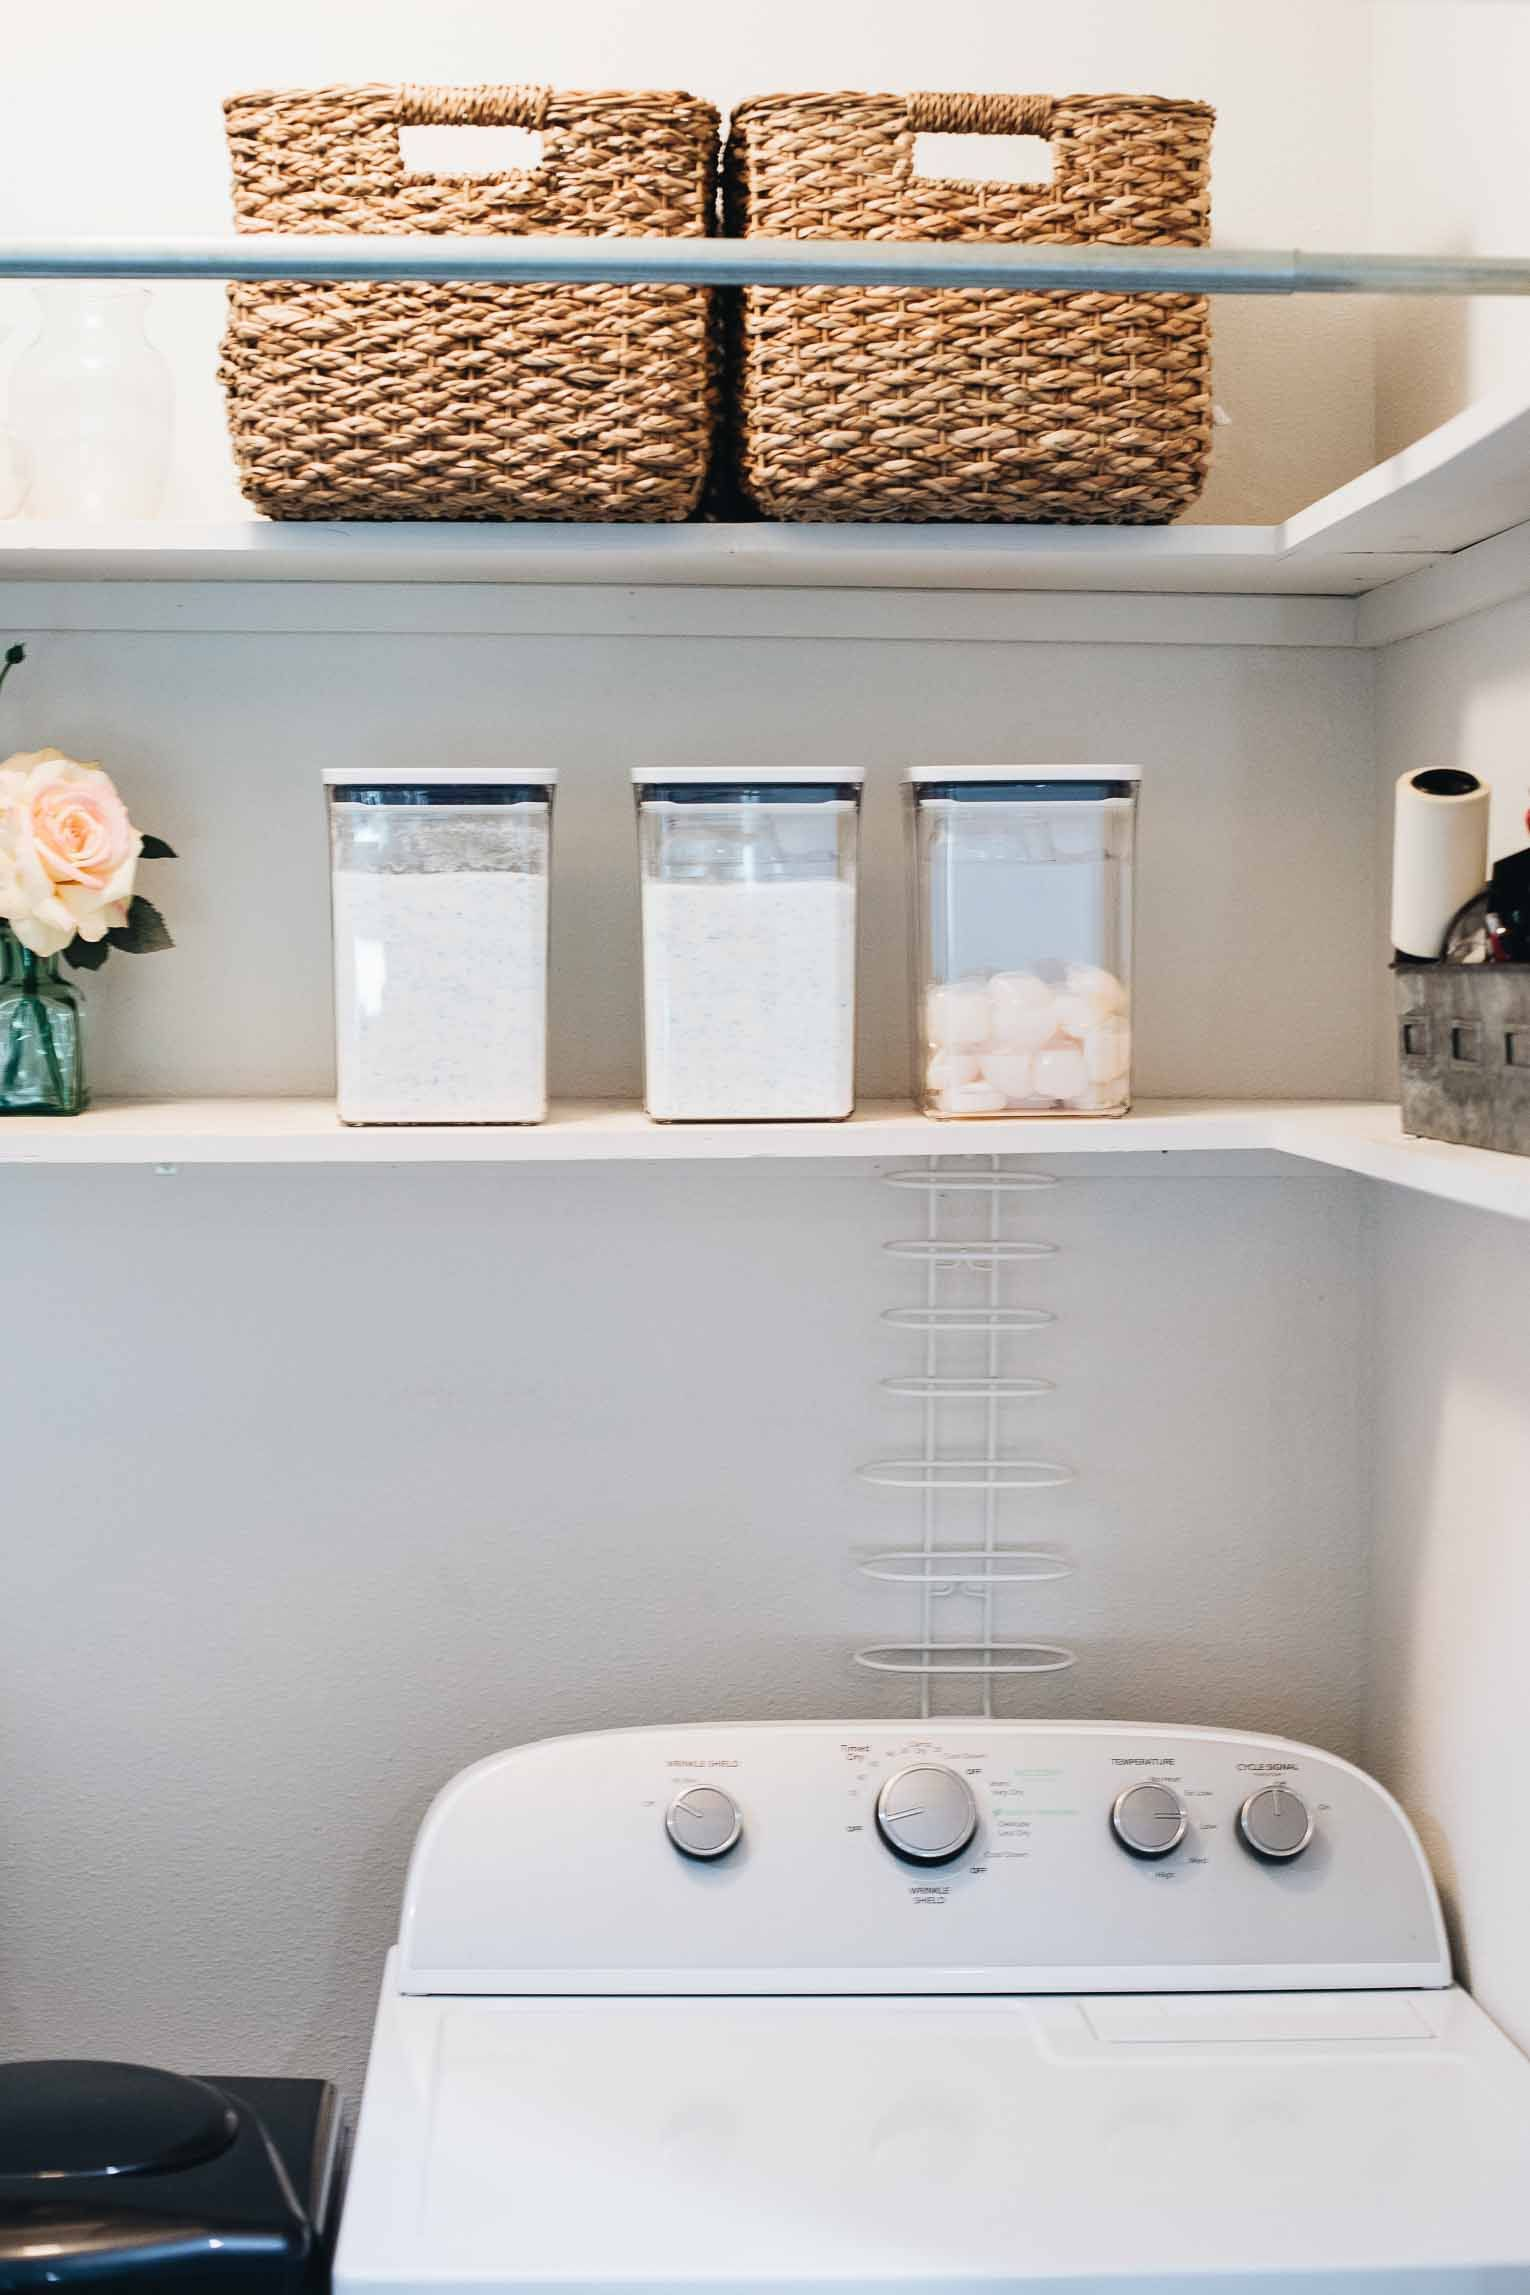 Need to organize your small laundry space? Here are 15 of our best laundry closet organization ideas!    #organizedlaundryroom #laundryclosetorganization #smalllaundrysolutions #laundryorganizationideas #smalllaundryorganization #tidylaundryroom